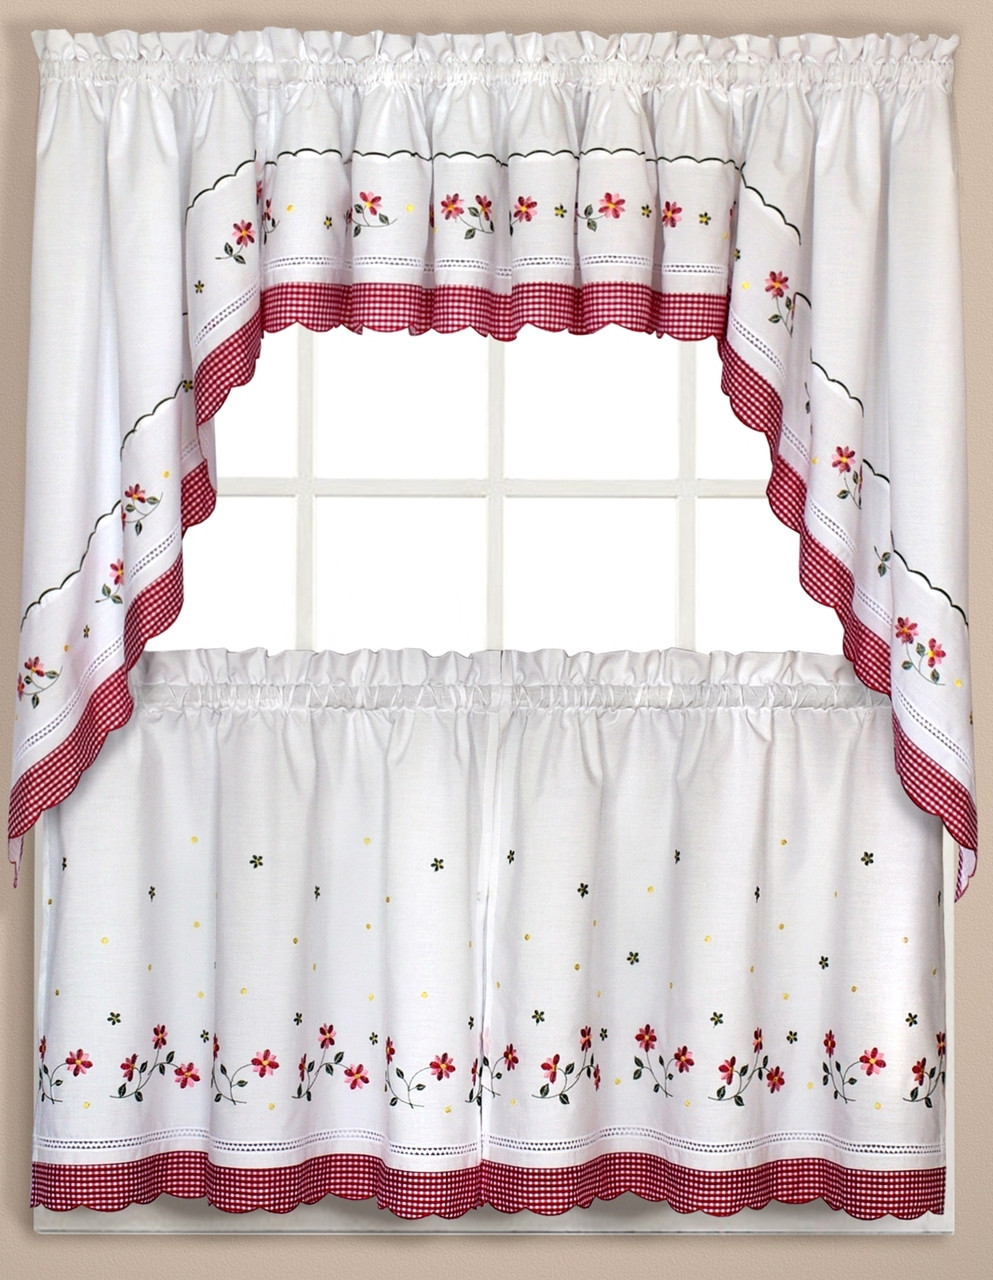 Gingham Floral Kitchen Curtain Red